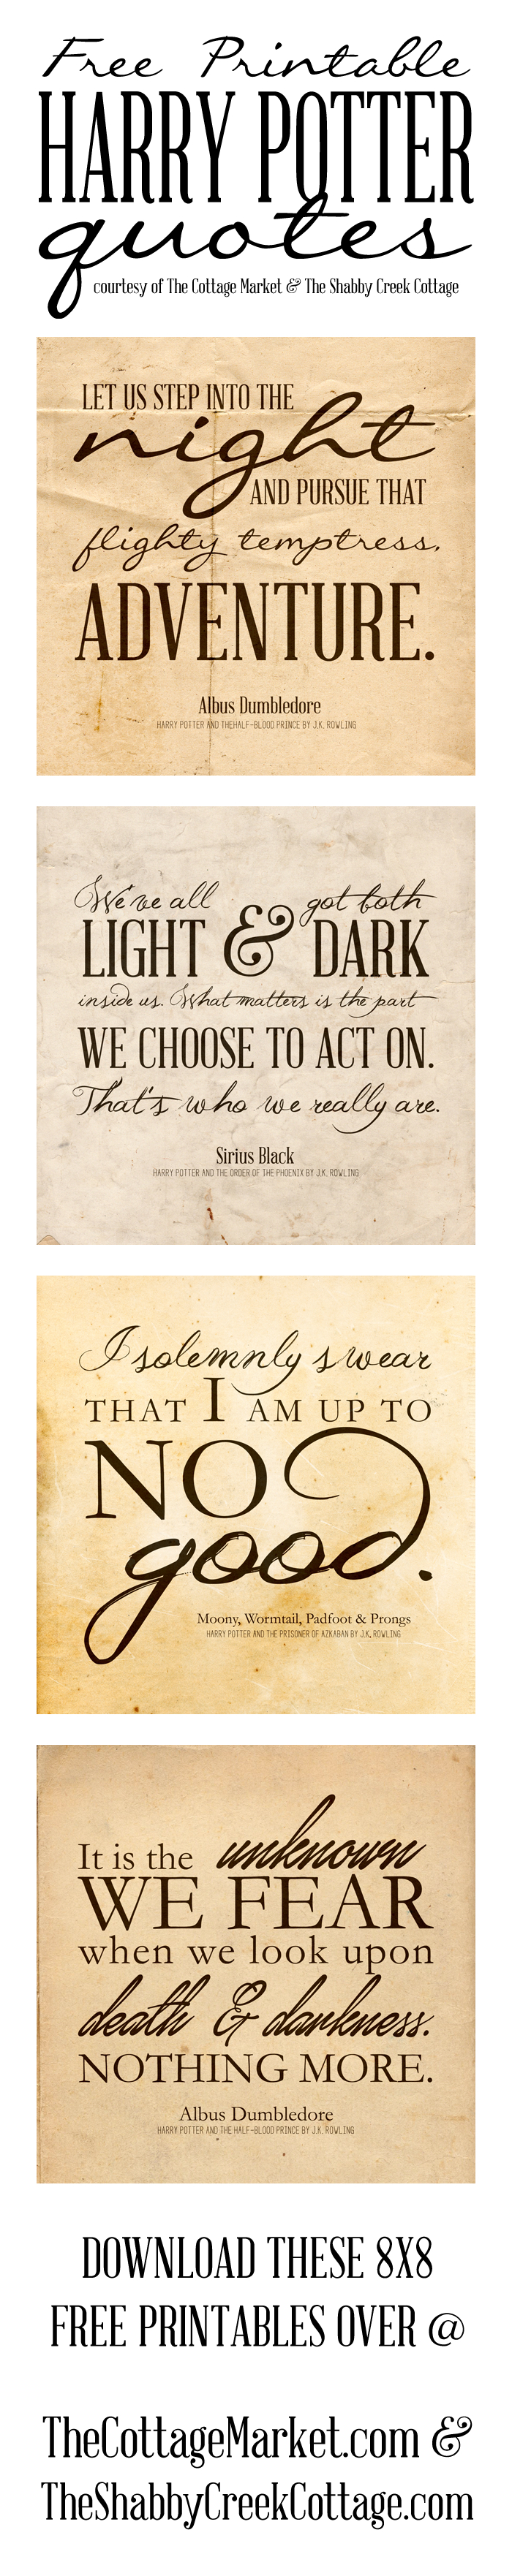 Free Printable Harry Potter Quotes   The Cottage Market - Free Printable Harry Potter Pictures